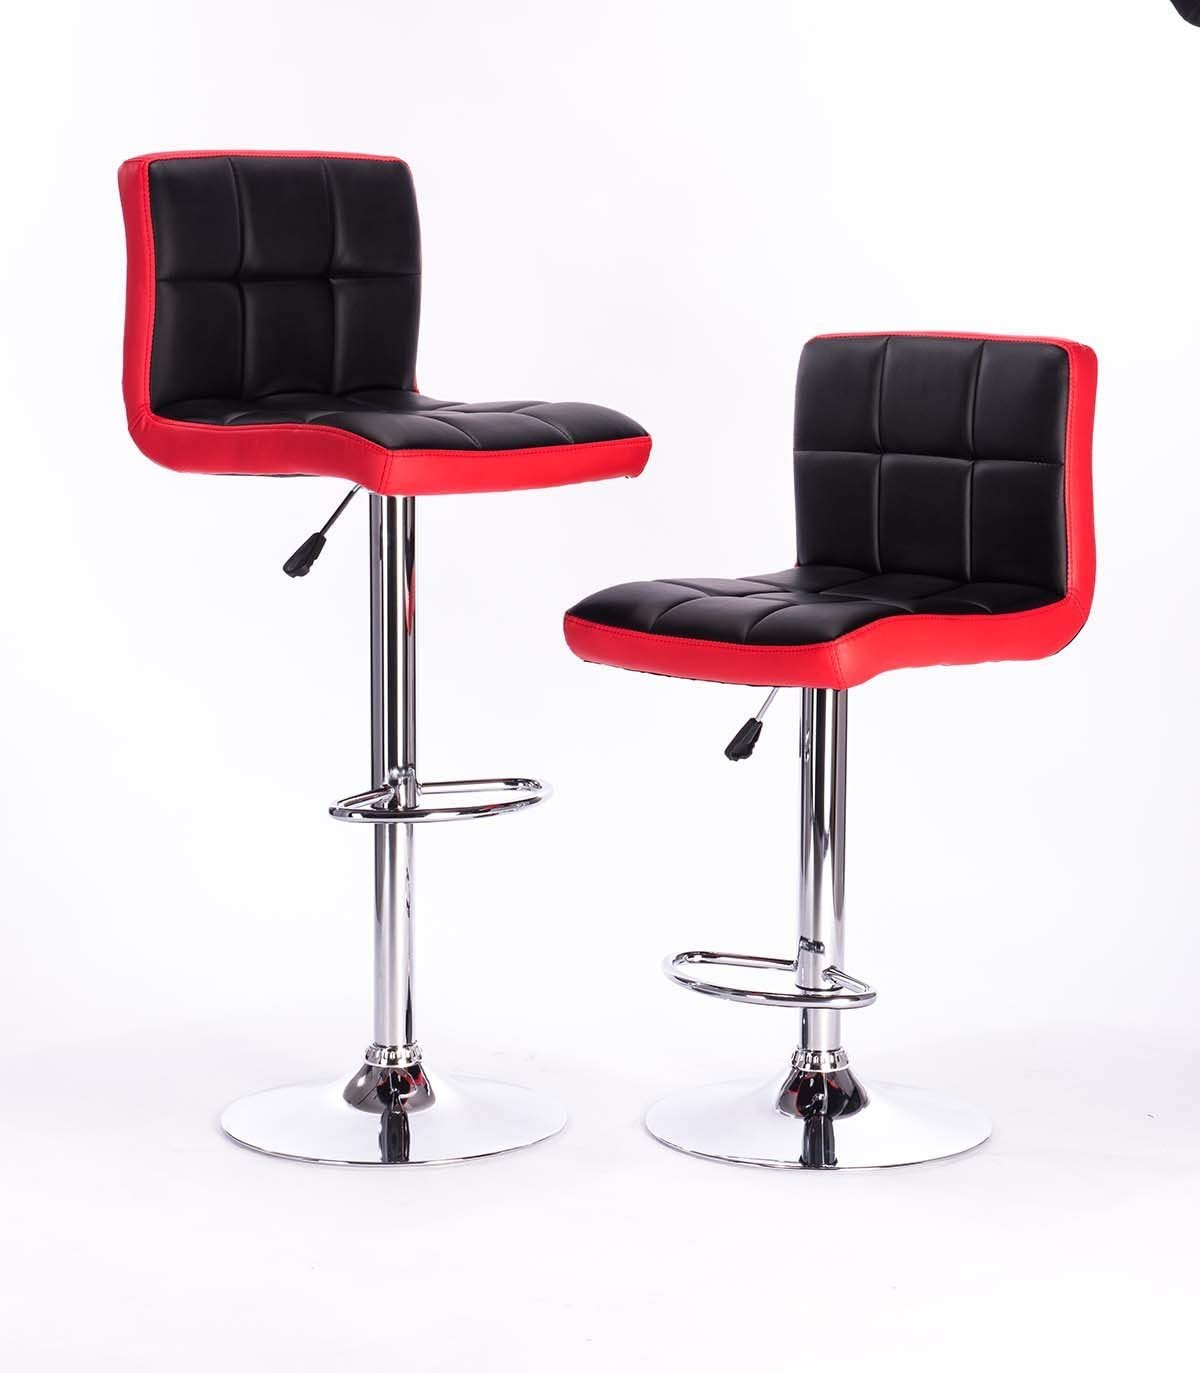 Attraction Design Black Red Modern Adjustable Synthetic Leather Swivel Bar Stools Chairs -Sets of 2